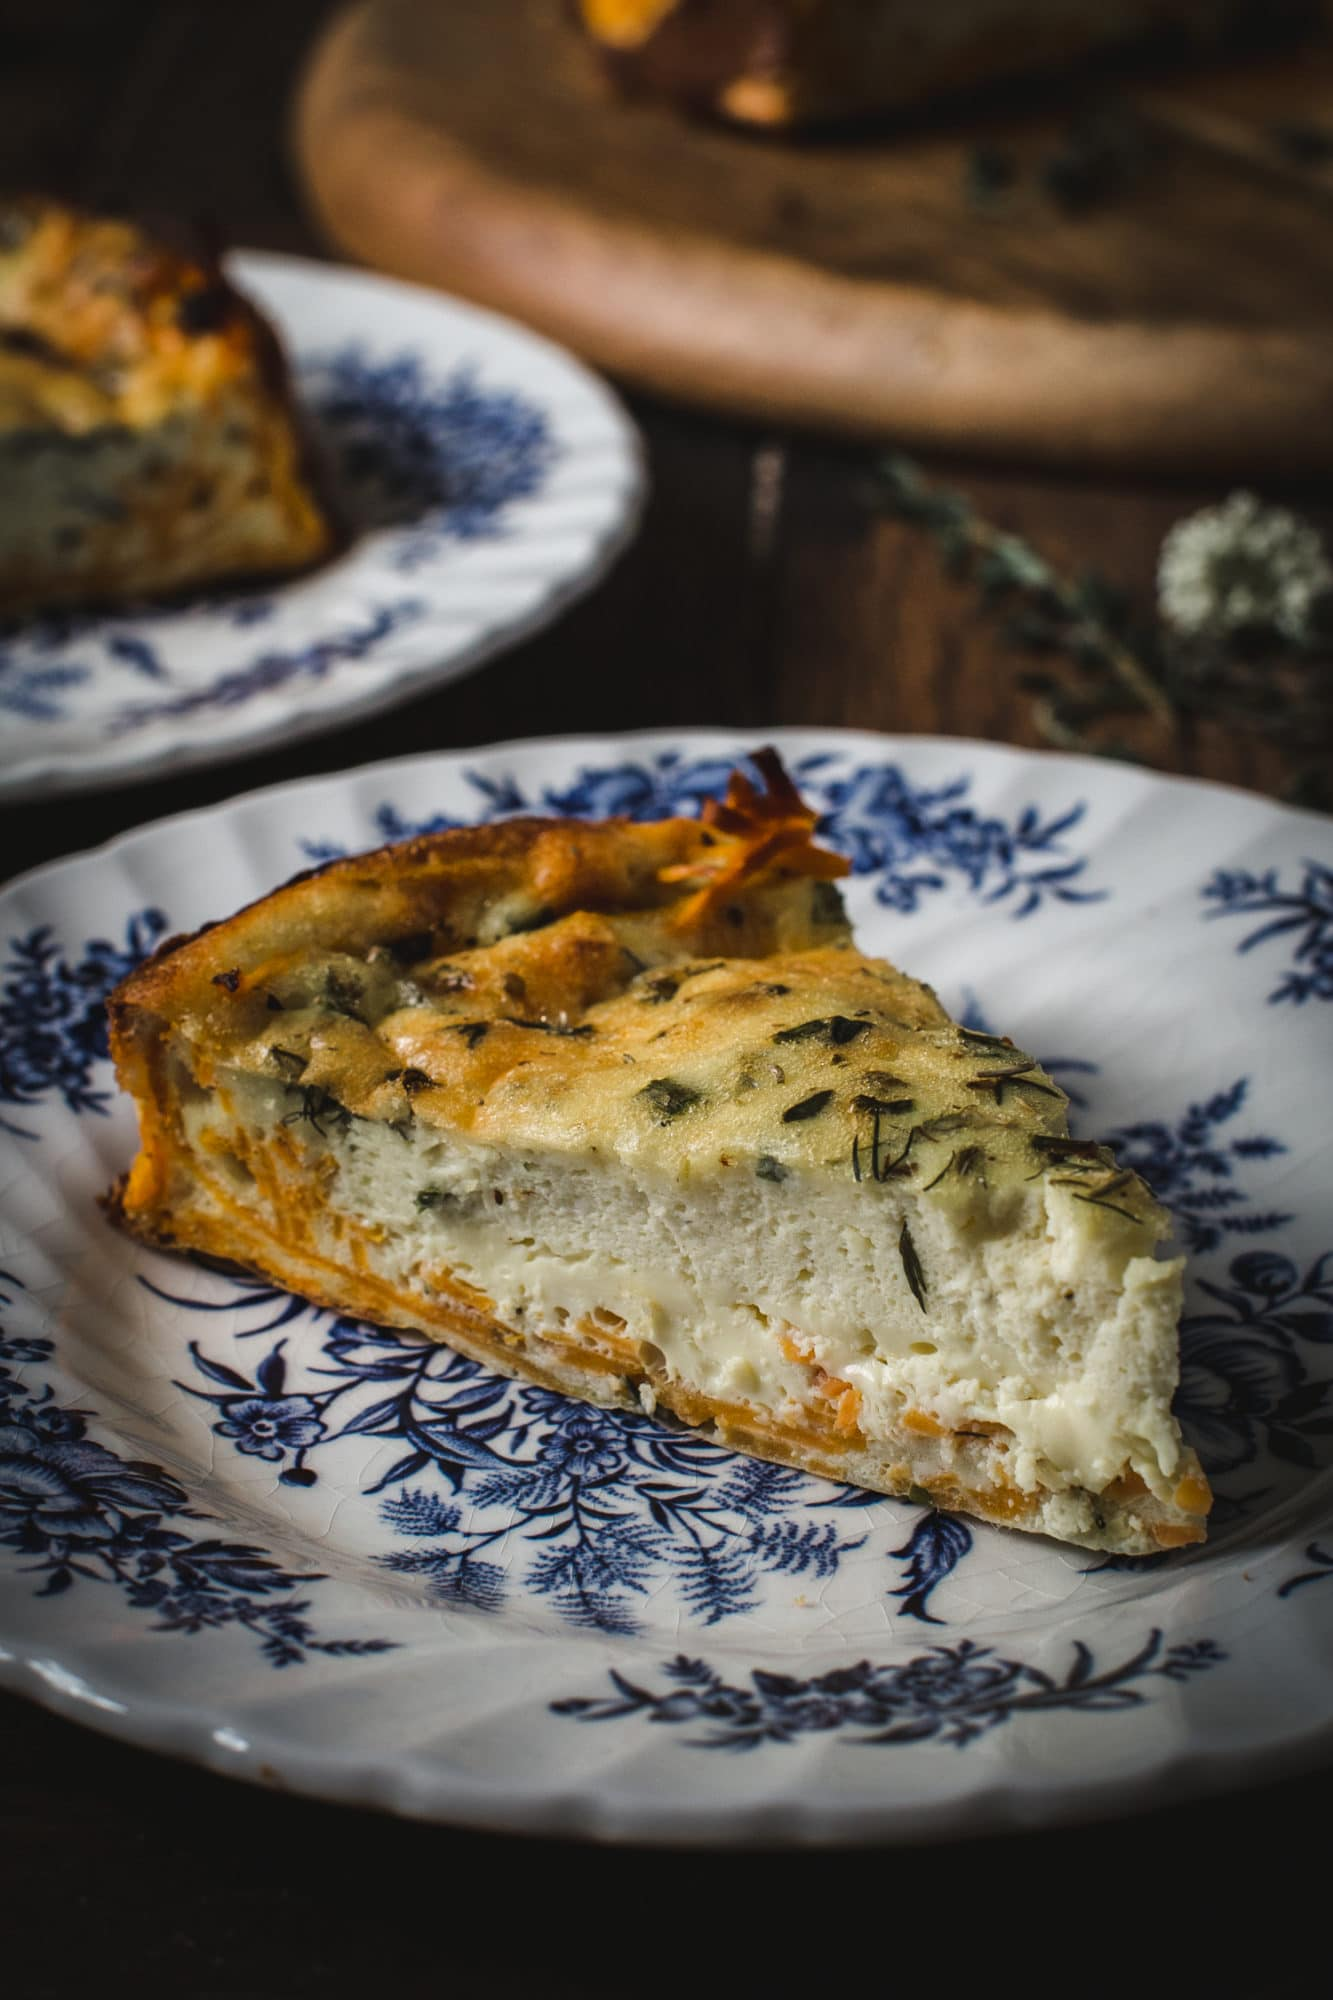 Goat Cheese and Herb Quick with Sweet Potato Crust slice on white china with blue floral